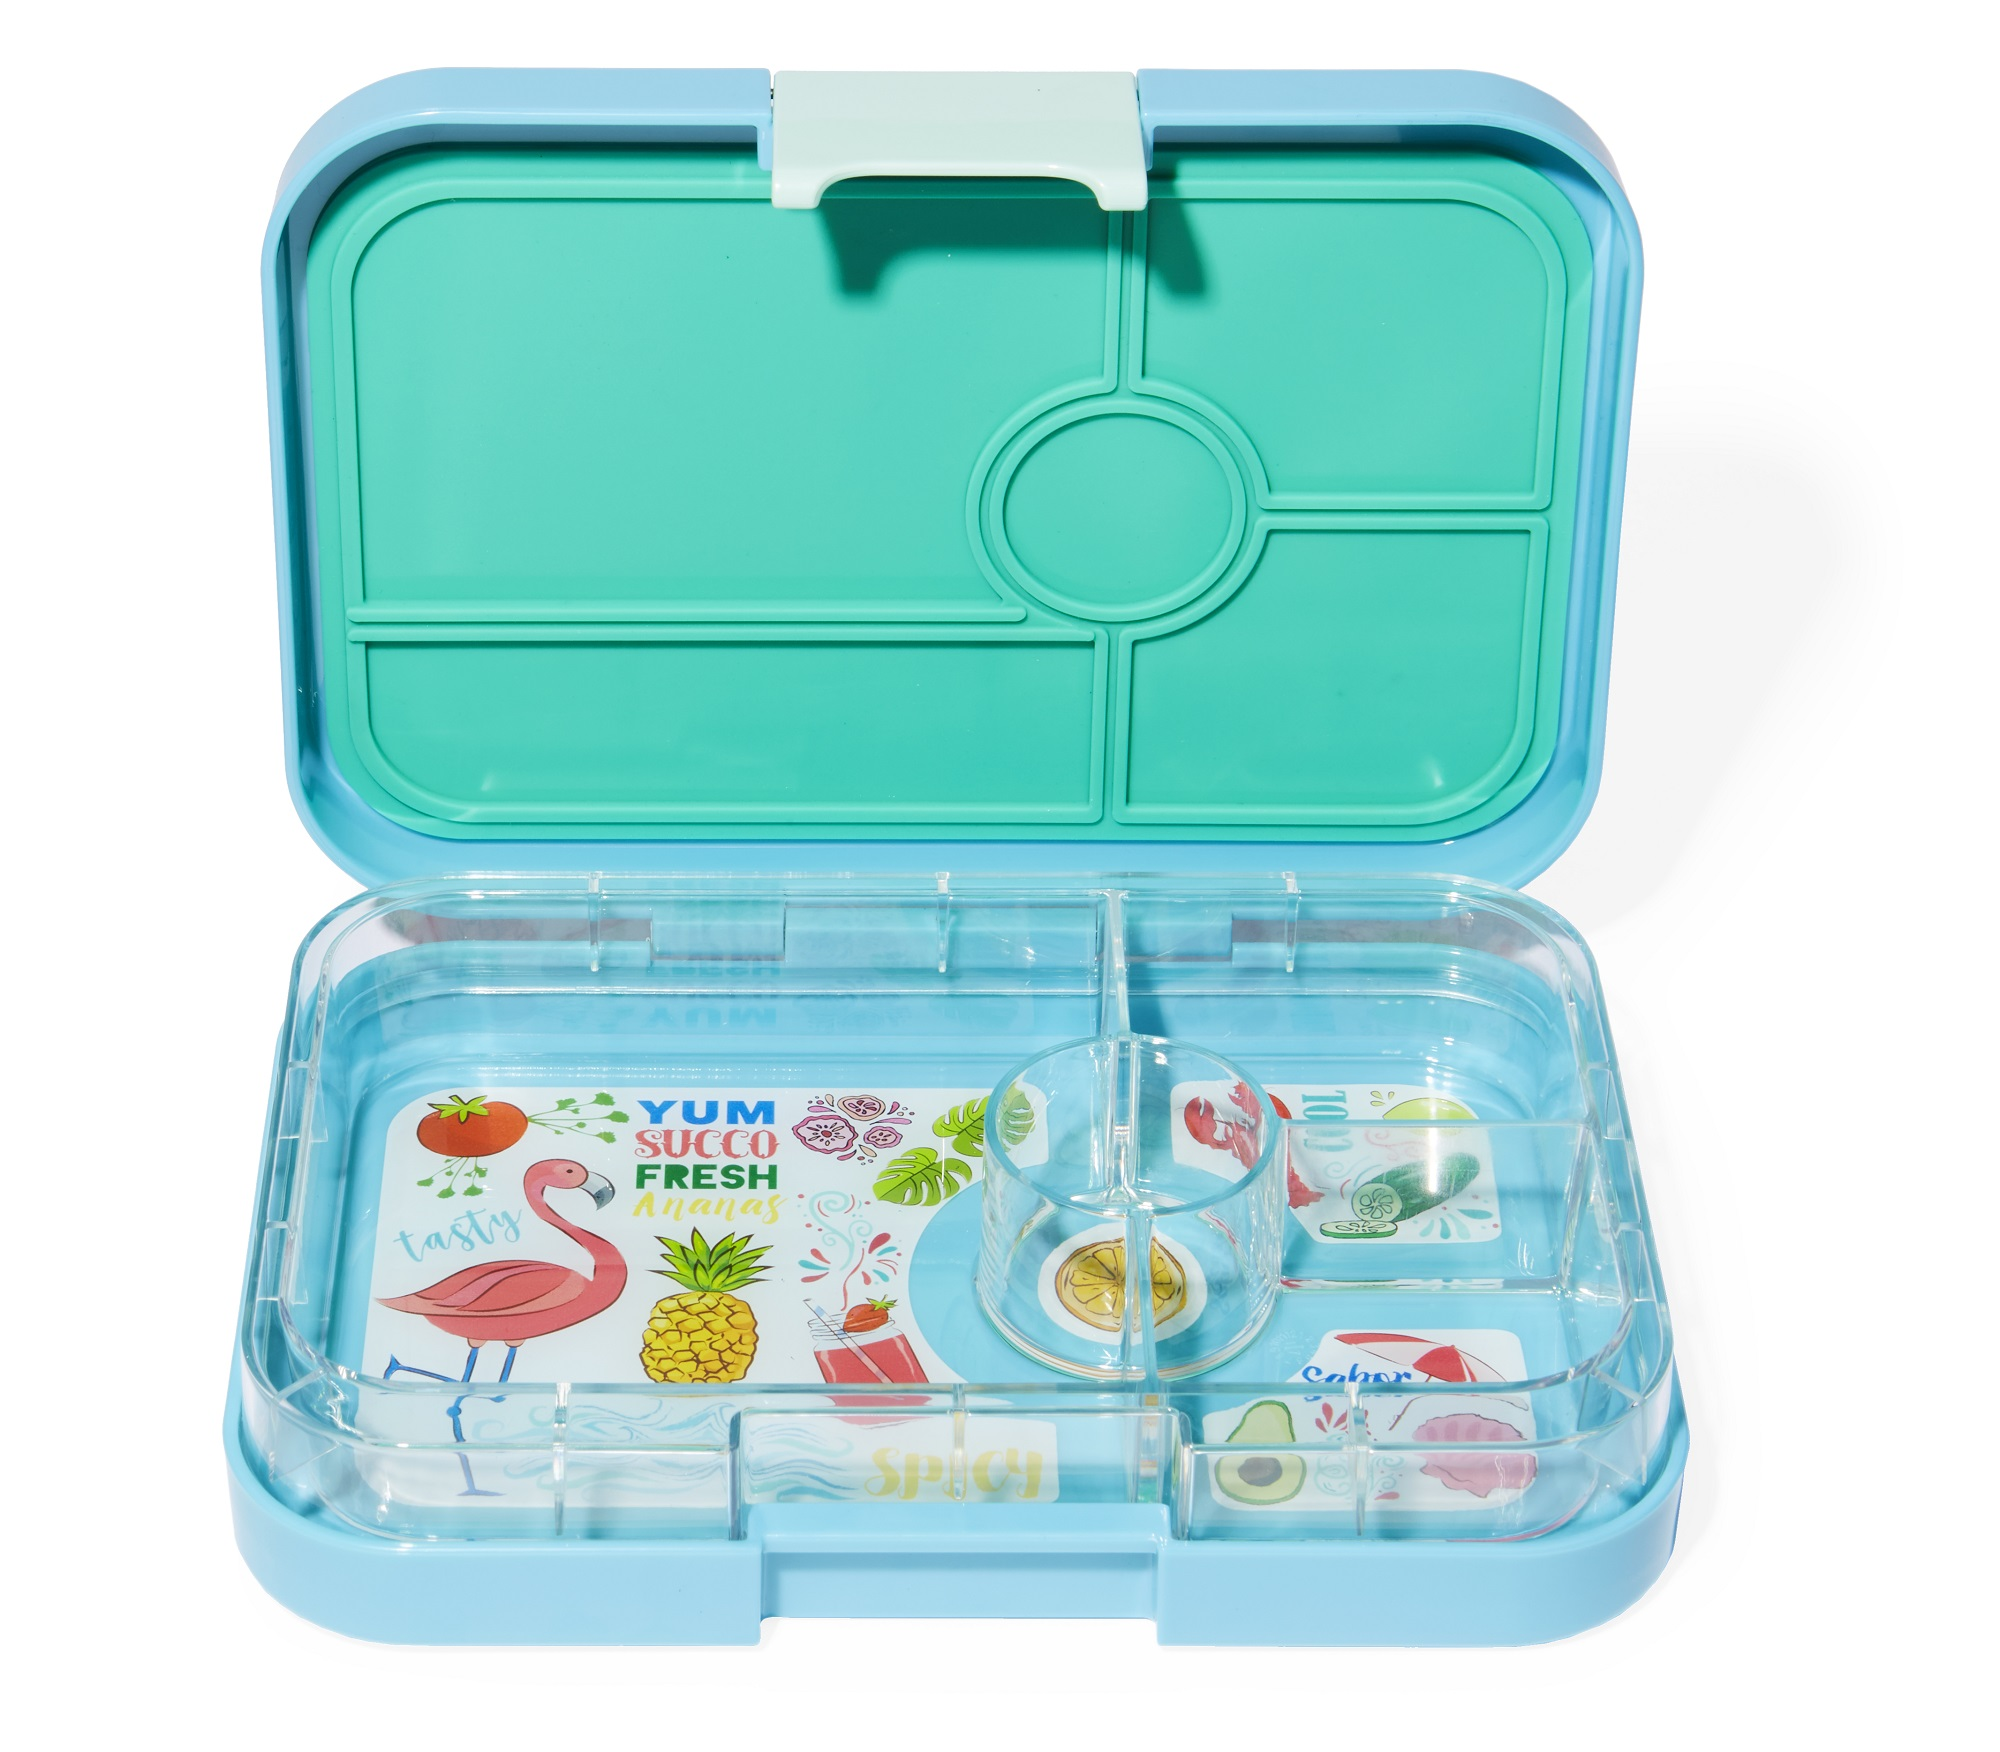 5 Best Bento Boxes to Carry the Perfect Packed Lunch